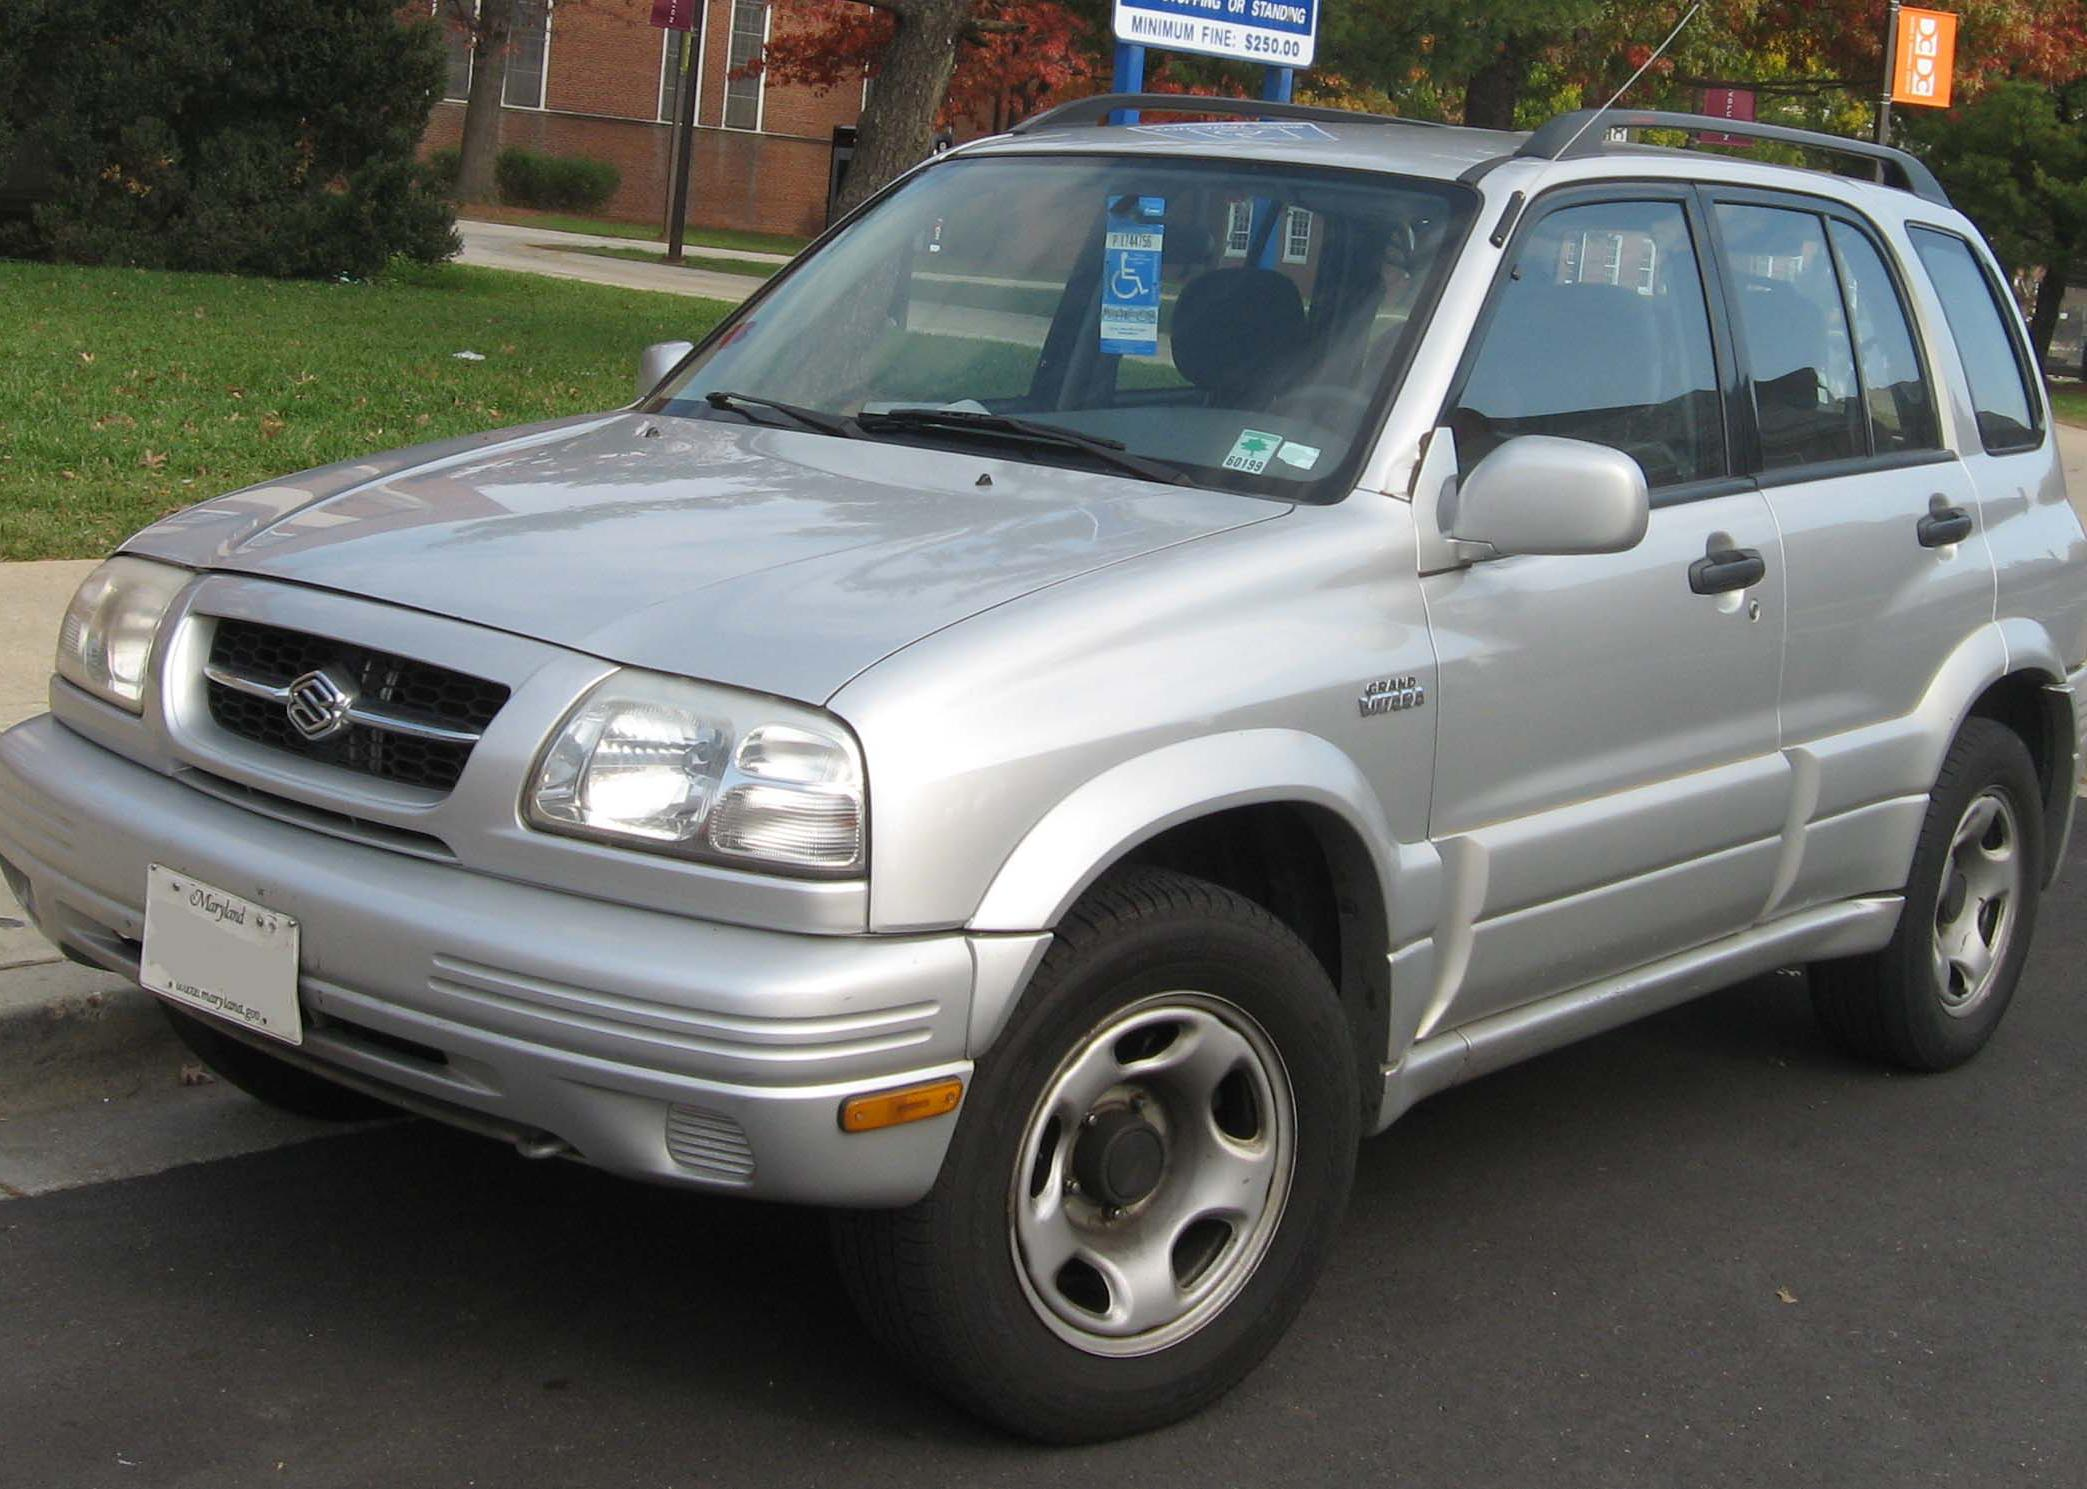 Suzuki Grand Vitara 5dr (2005) 2.0 AT JLX-EL